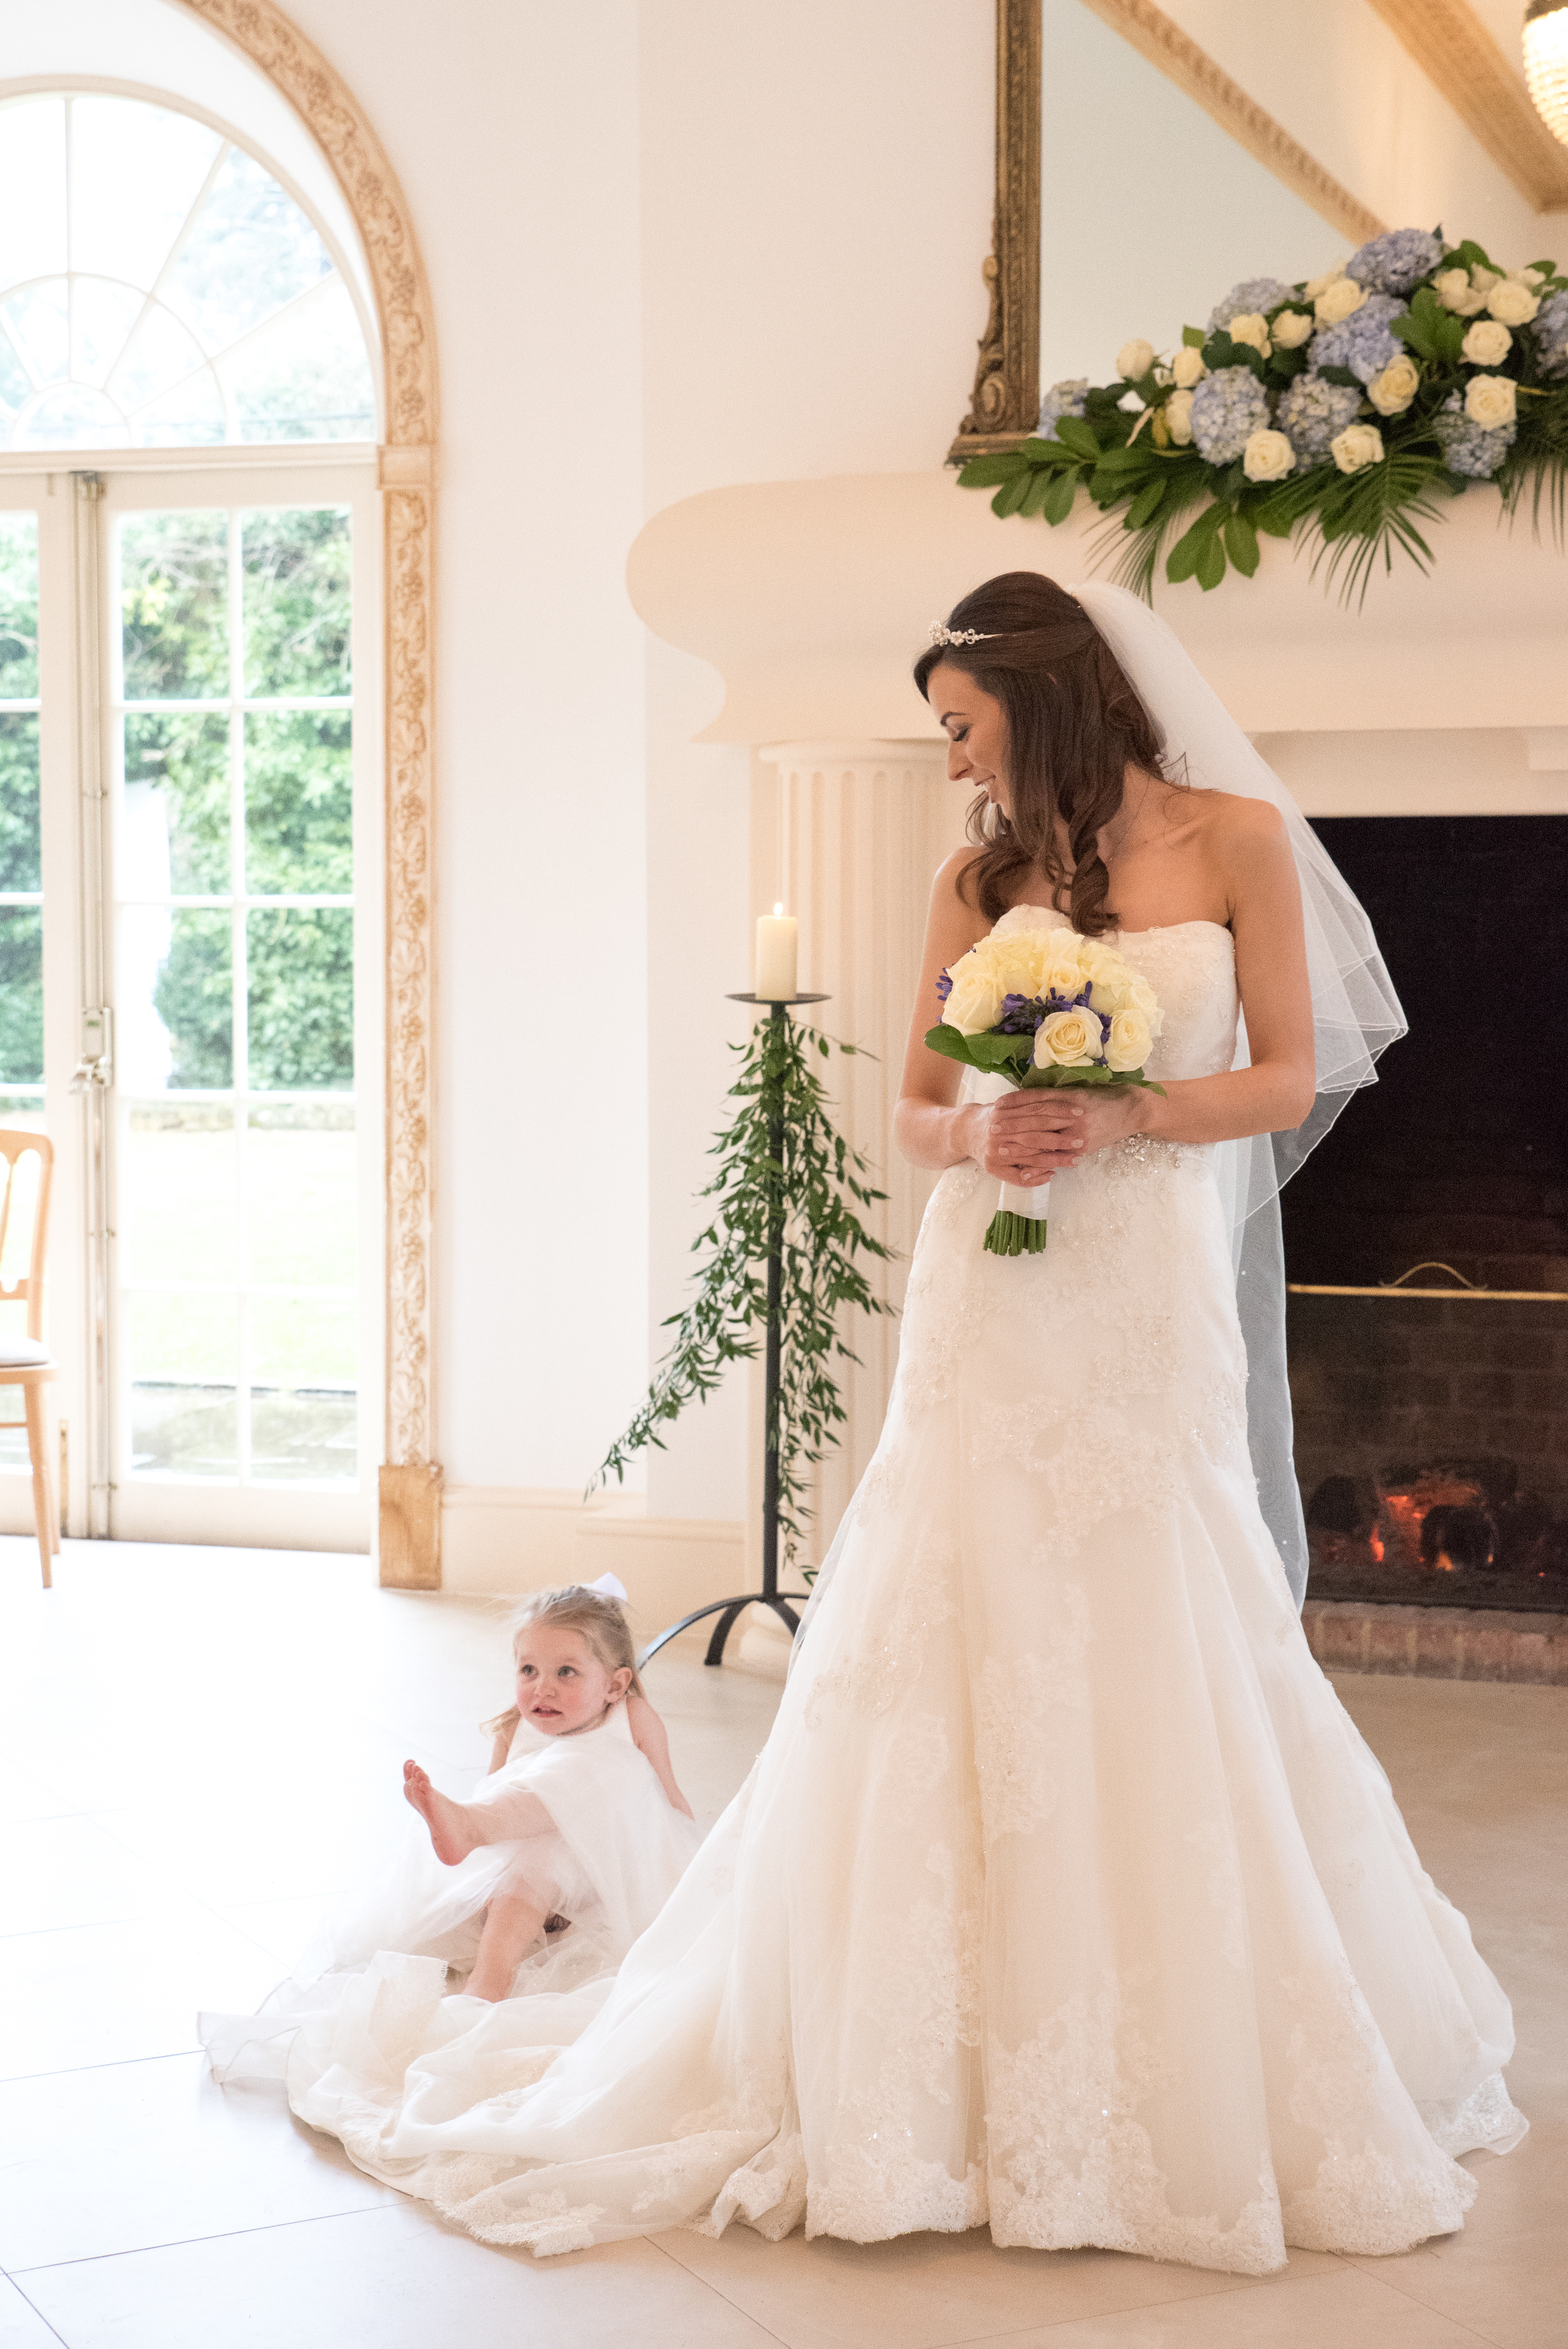 Northbrook park wedding photographer / Fleet wedding photographer